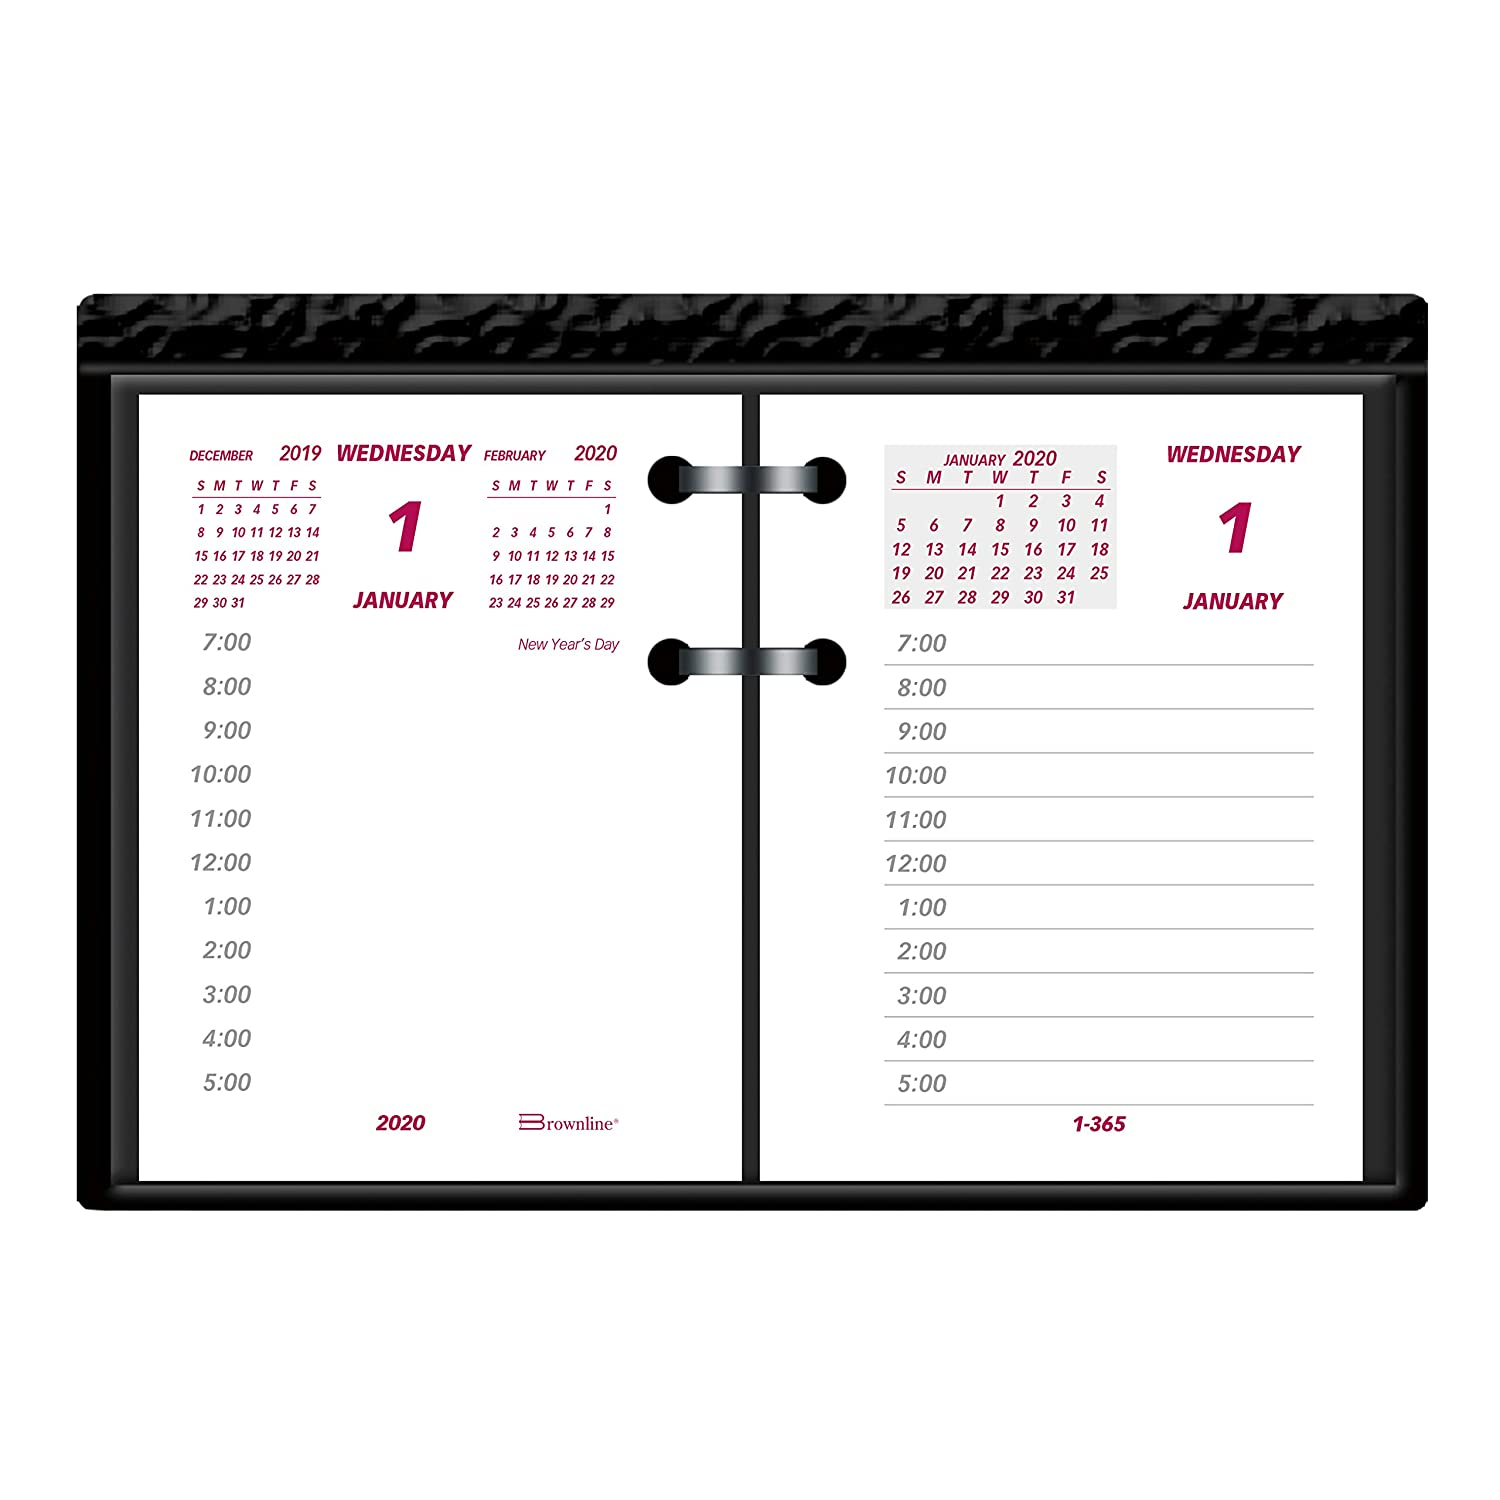 Hourly Calendar For 16, 17 18 February 2019 Amazon.: Brownline 2020 Daily Desk Calendar, Refill, 3.75 x